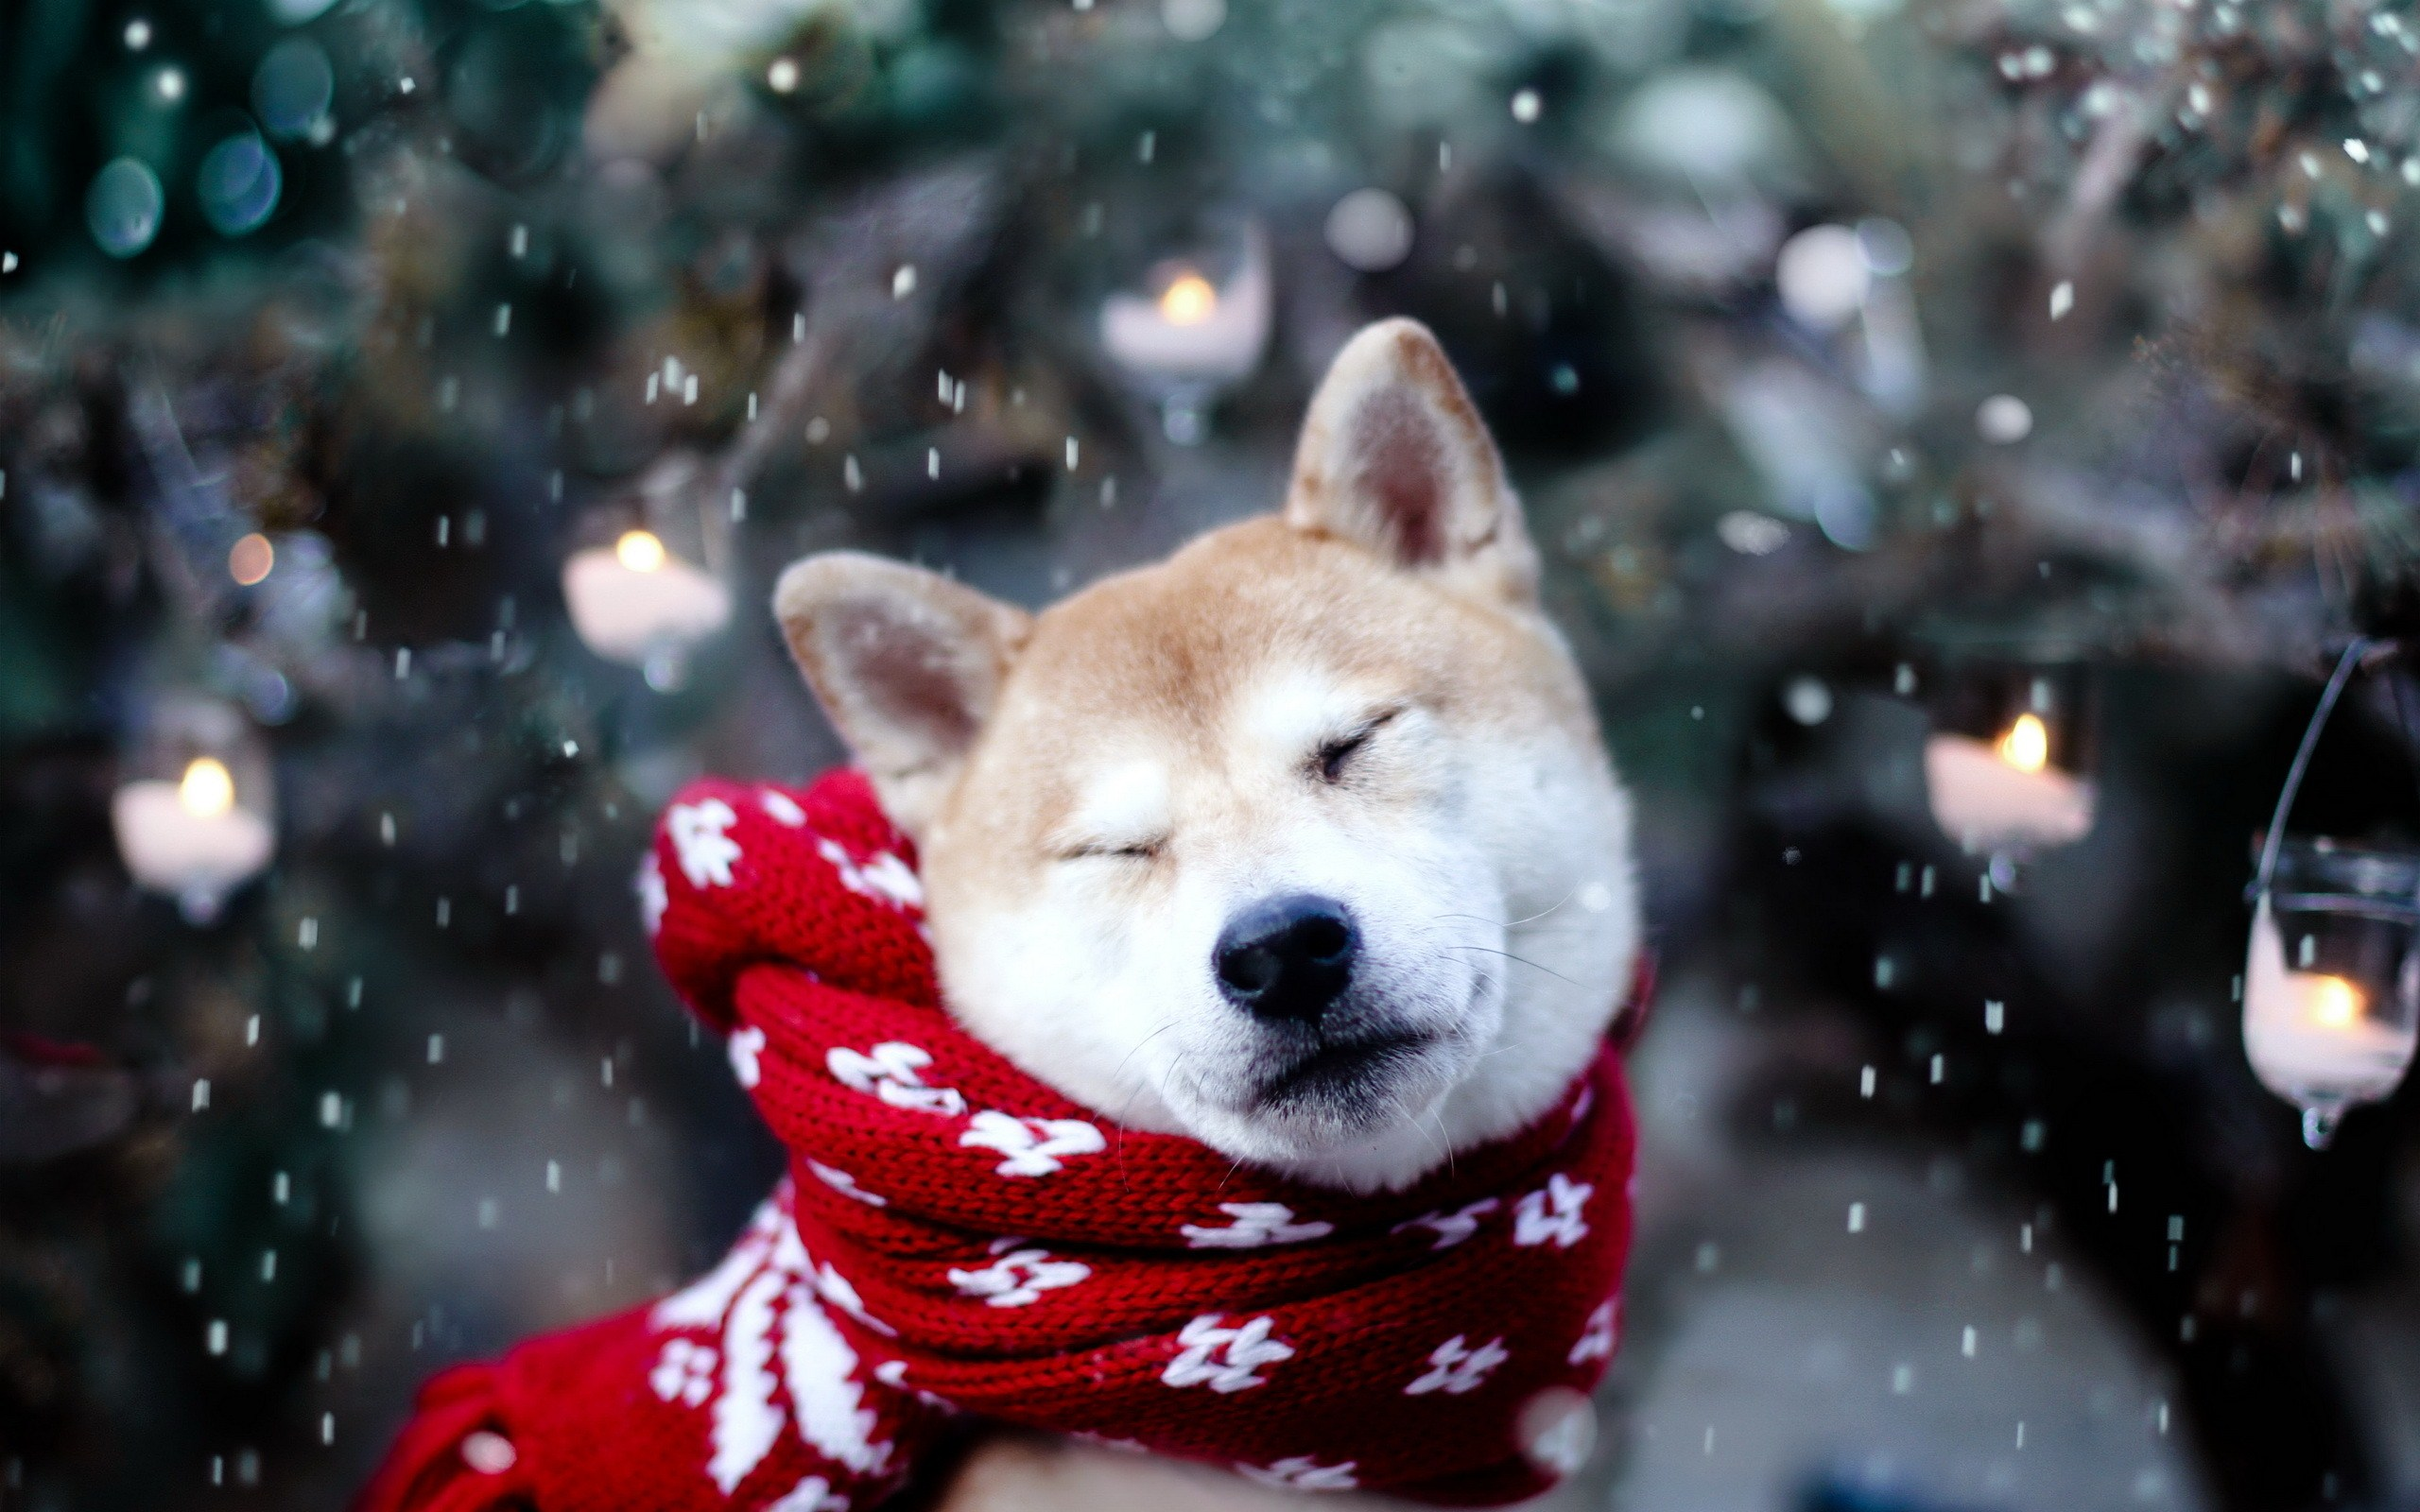 cute dog winter snow snowflakes nature photo wallpaper 2560x1600 2560x1600